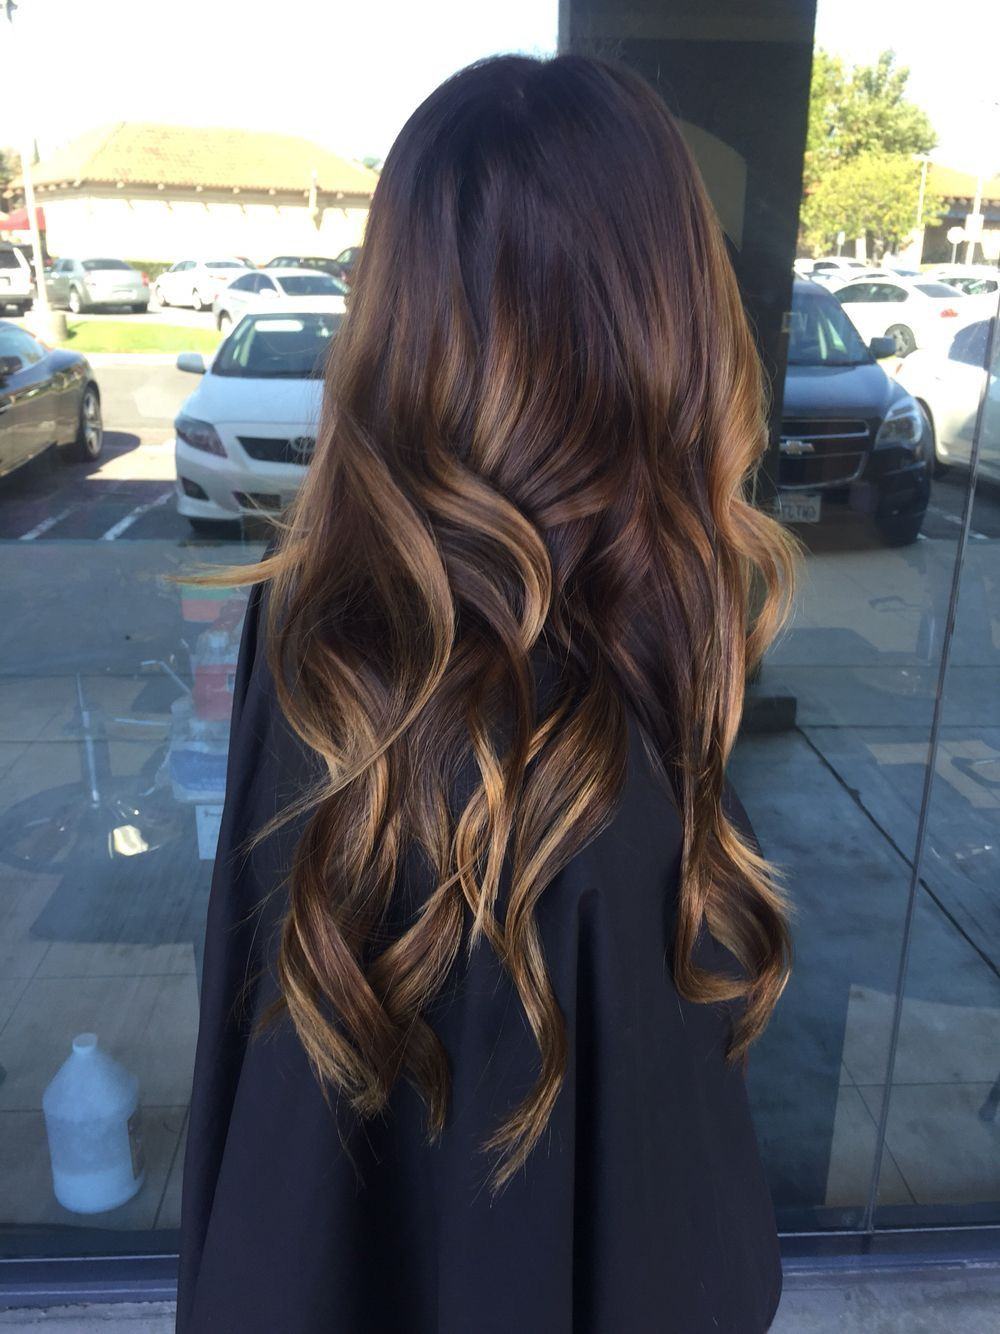 Pin by jess zen on hair in pinterest hair hair styles and